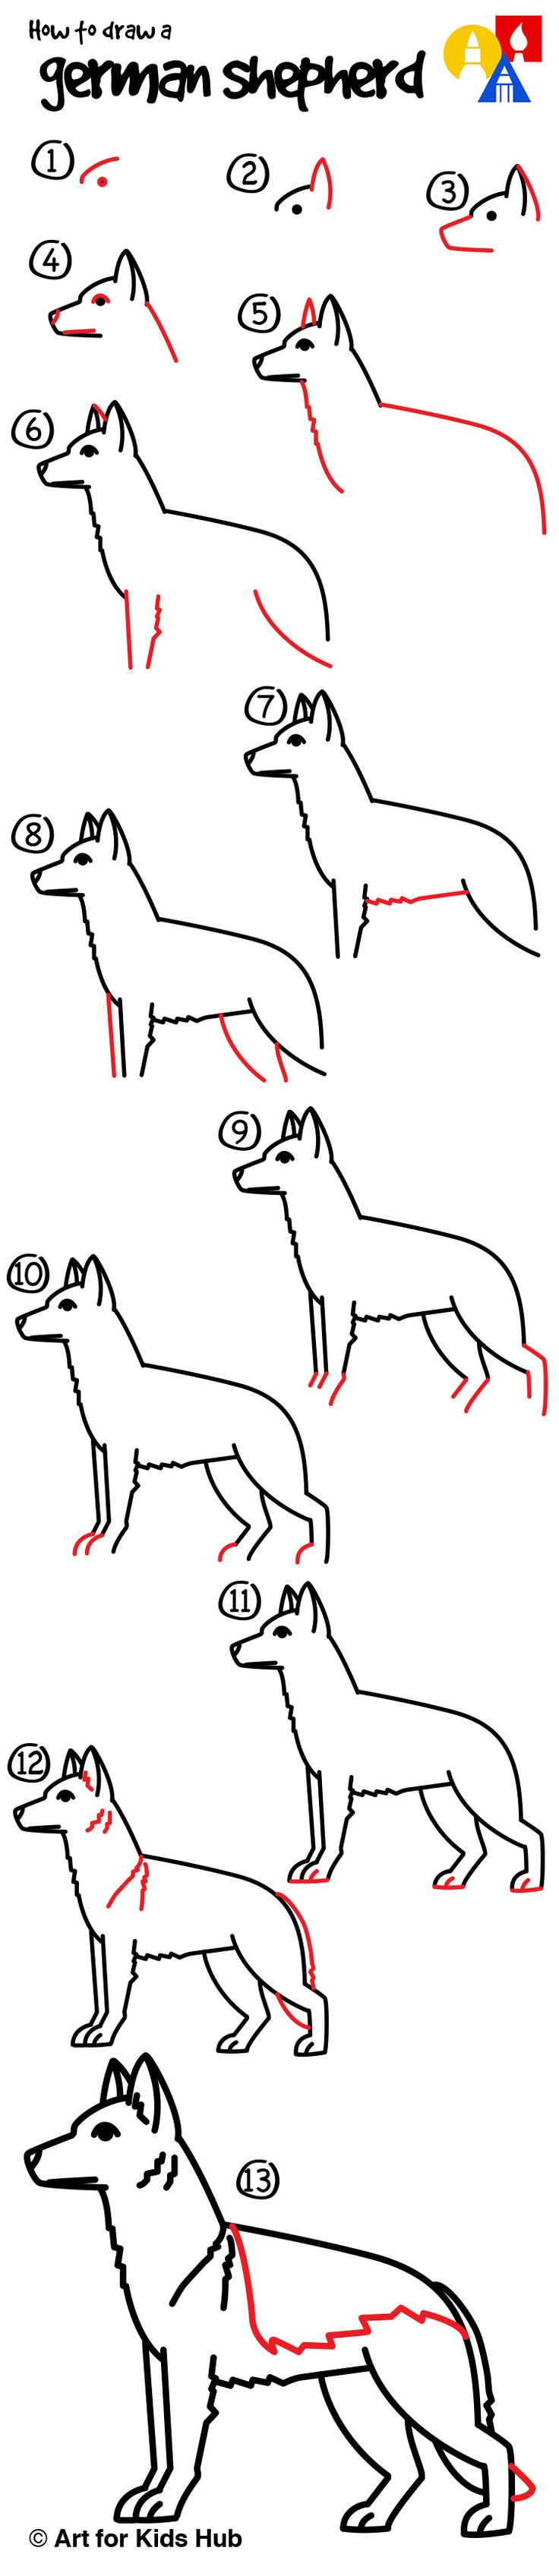 62 best afkh step by steps images on pinterest easy drawings how to draw a german shepherd art for kids hub altavistaventures Image collections